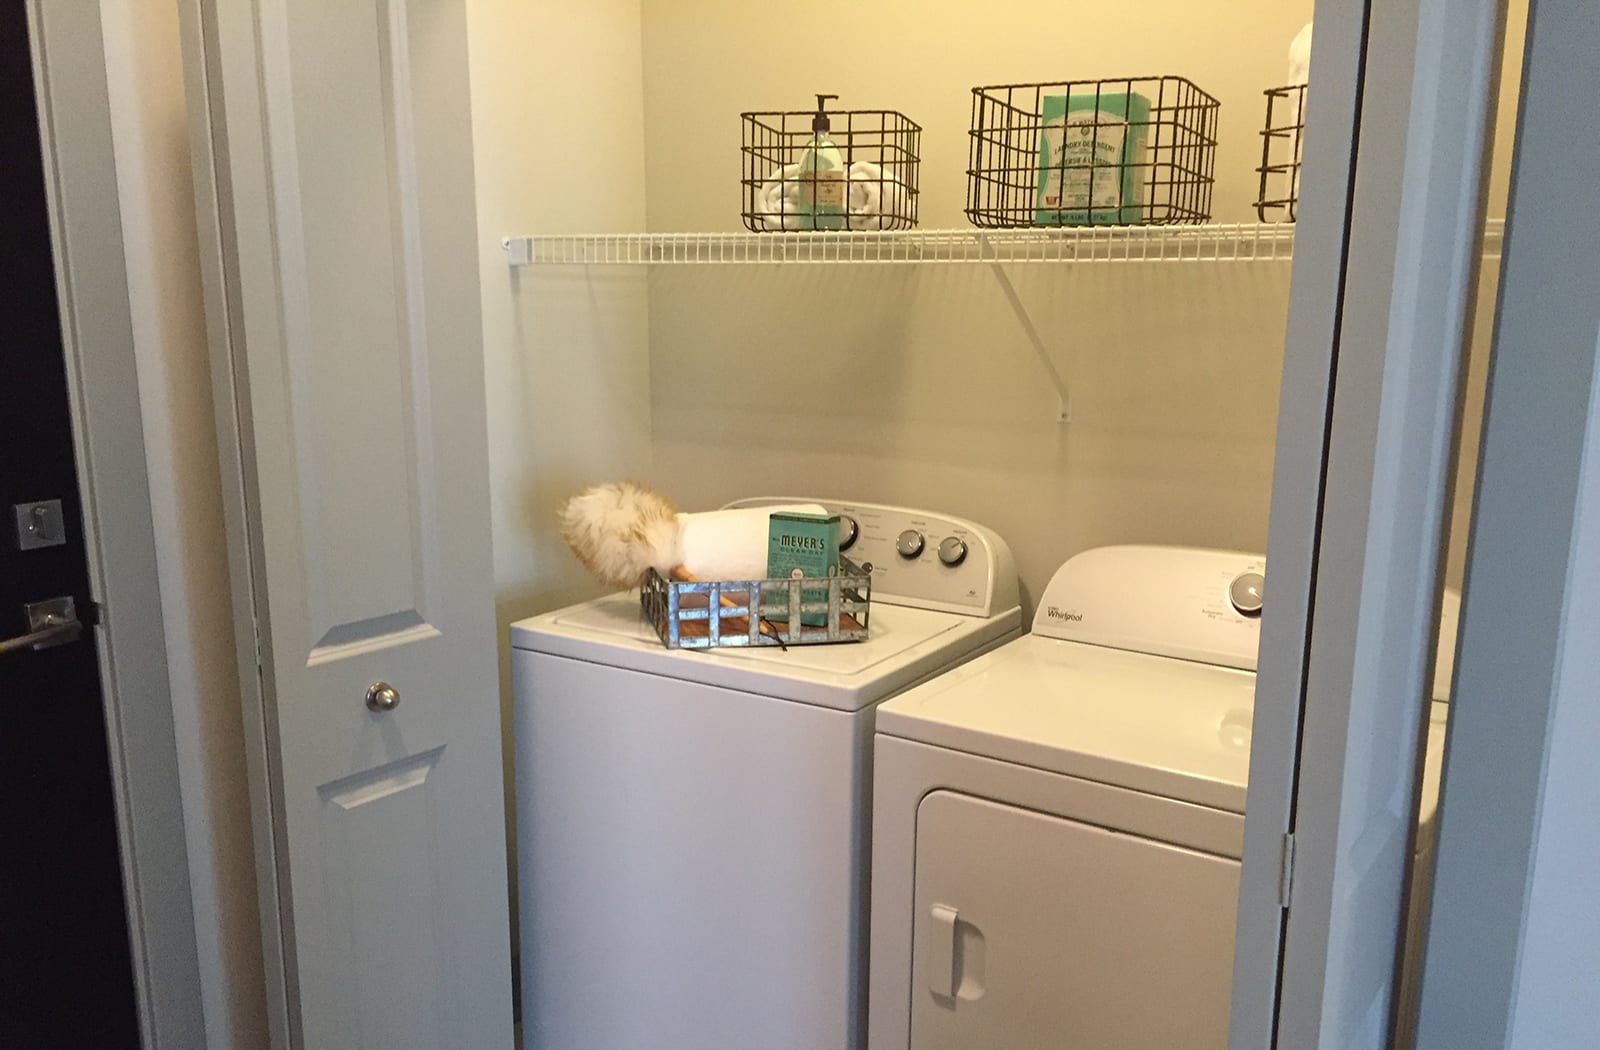 Washer And Dryer In Every Home at Centric LoHi by Windsor, Denver, CO